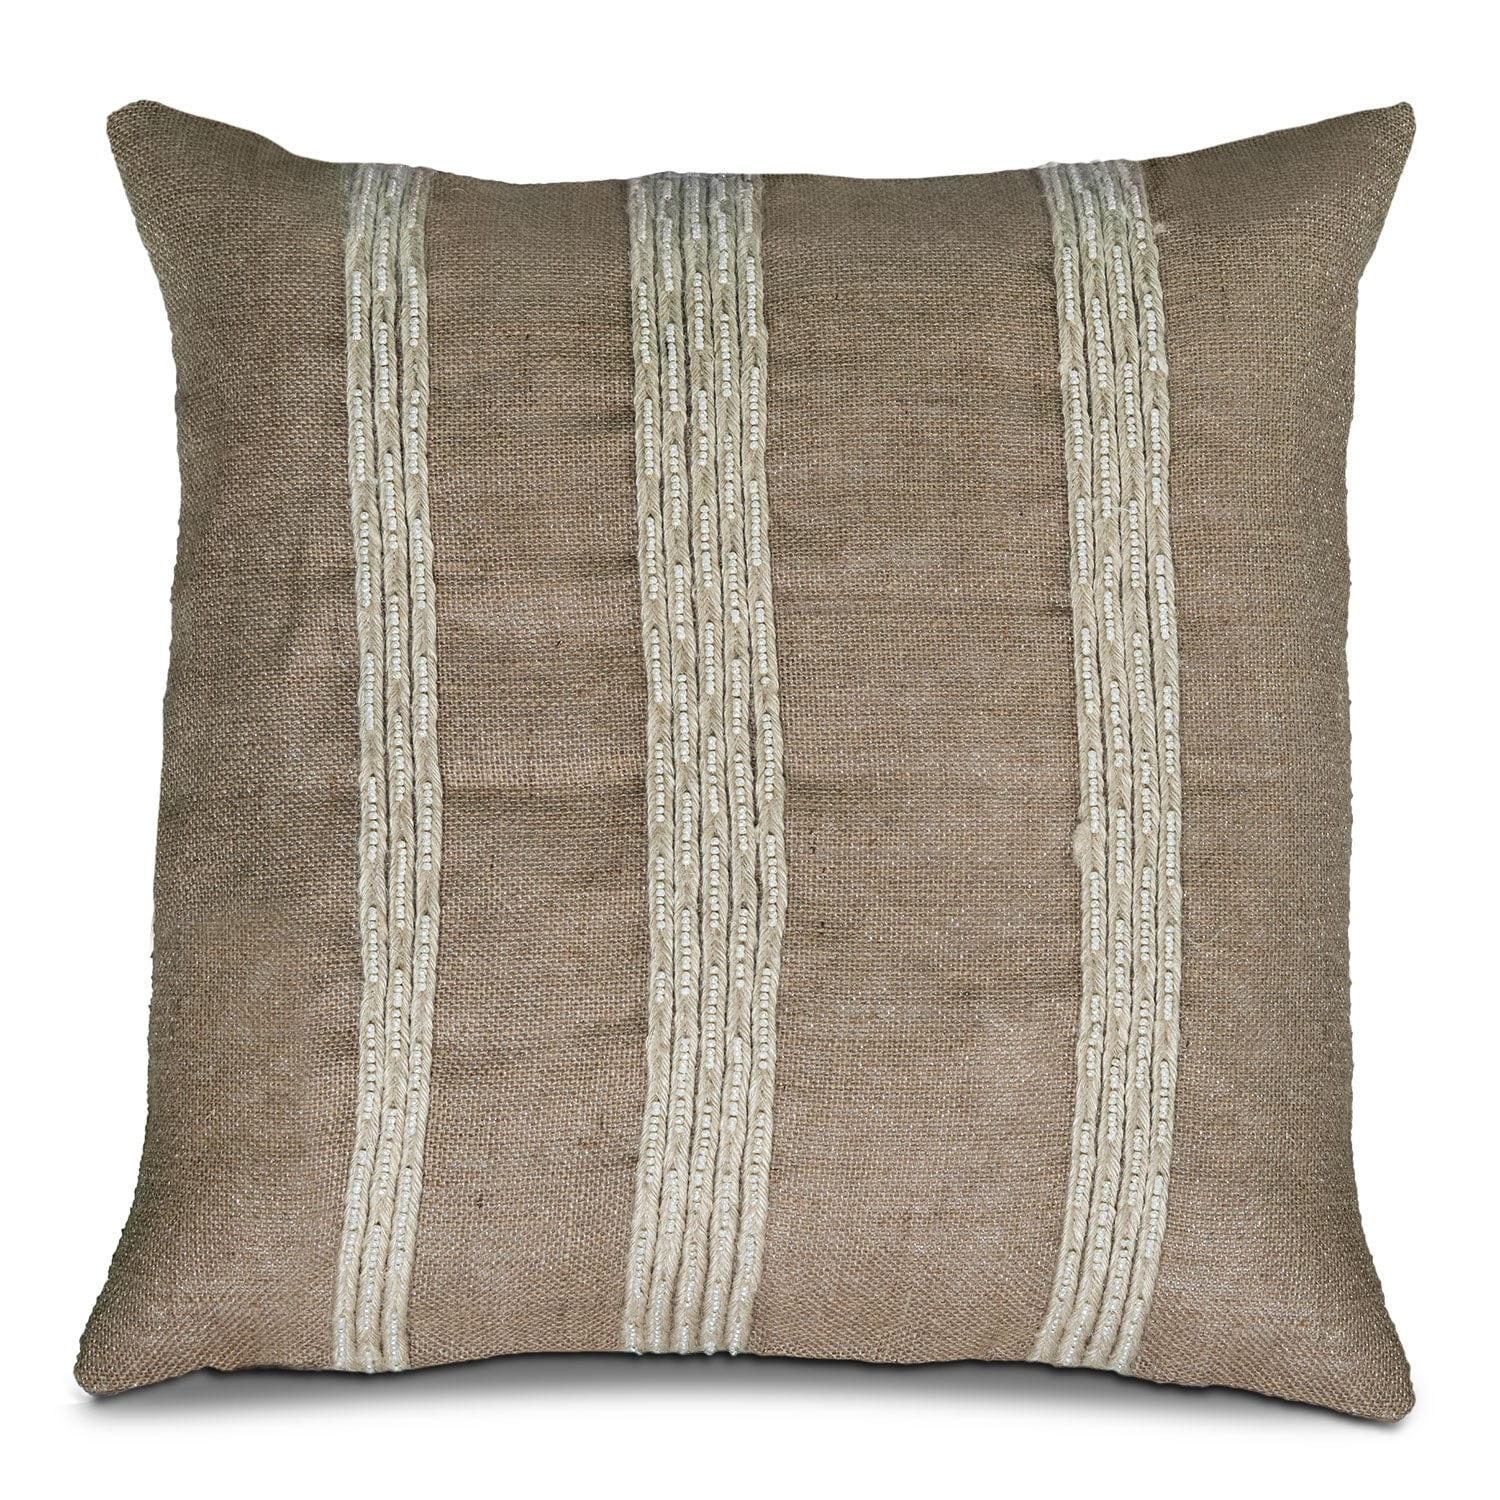 Natural Stripes Decorative Pillow